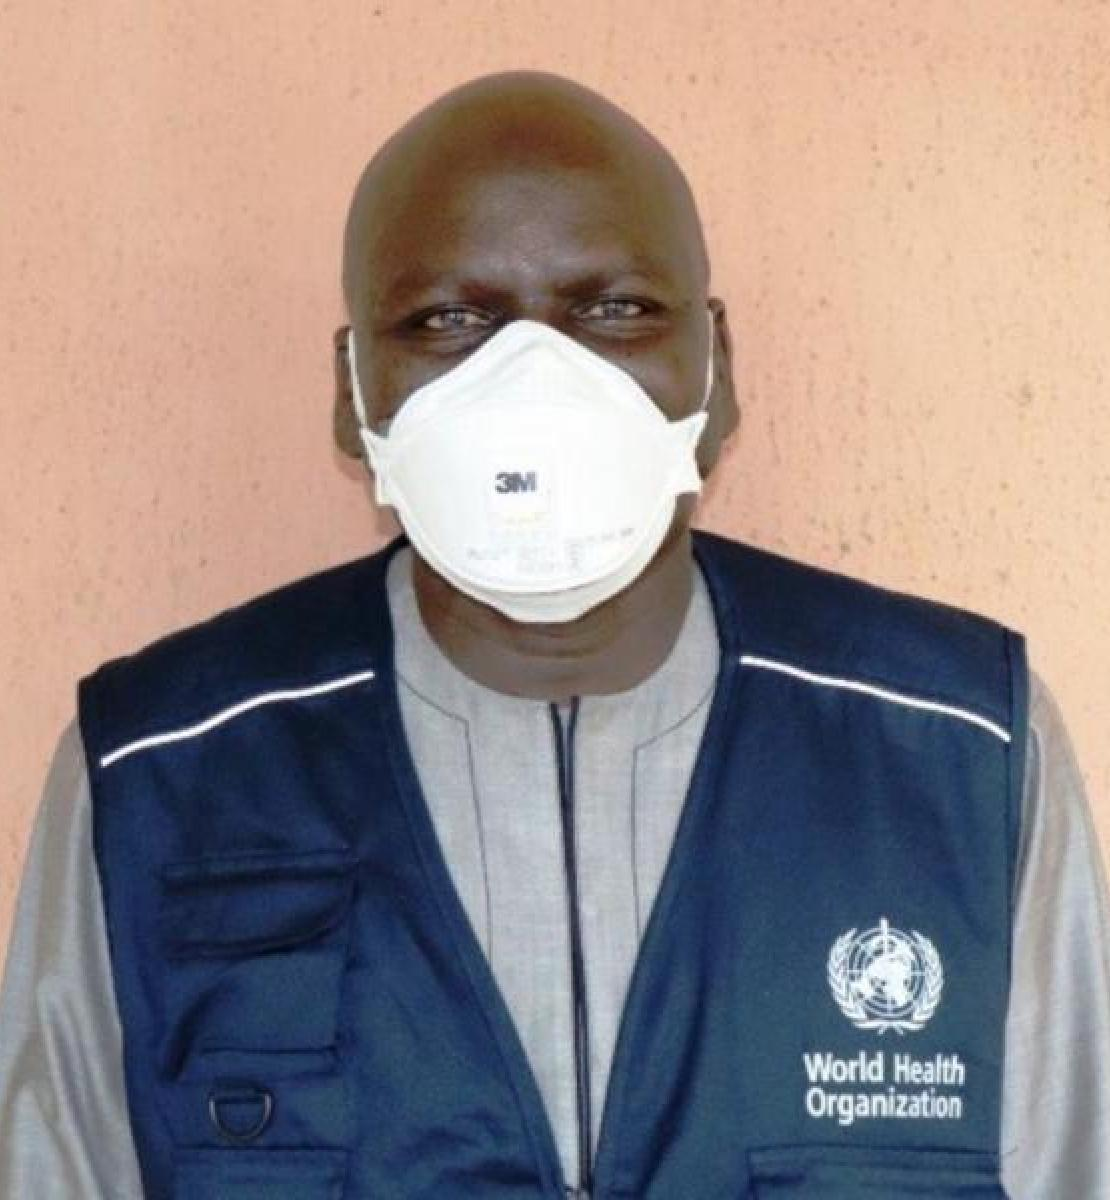 Dr. Haruna Ismaila Adamu, recovered rom COVID-19 after taking the proper precautions.